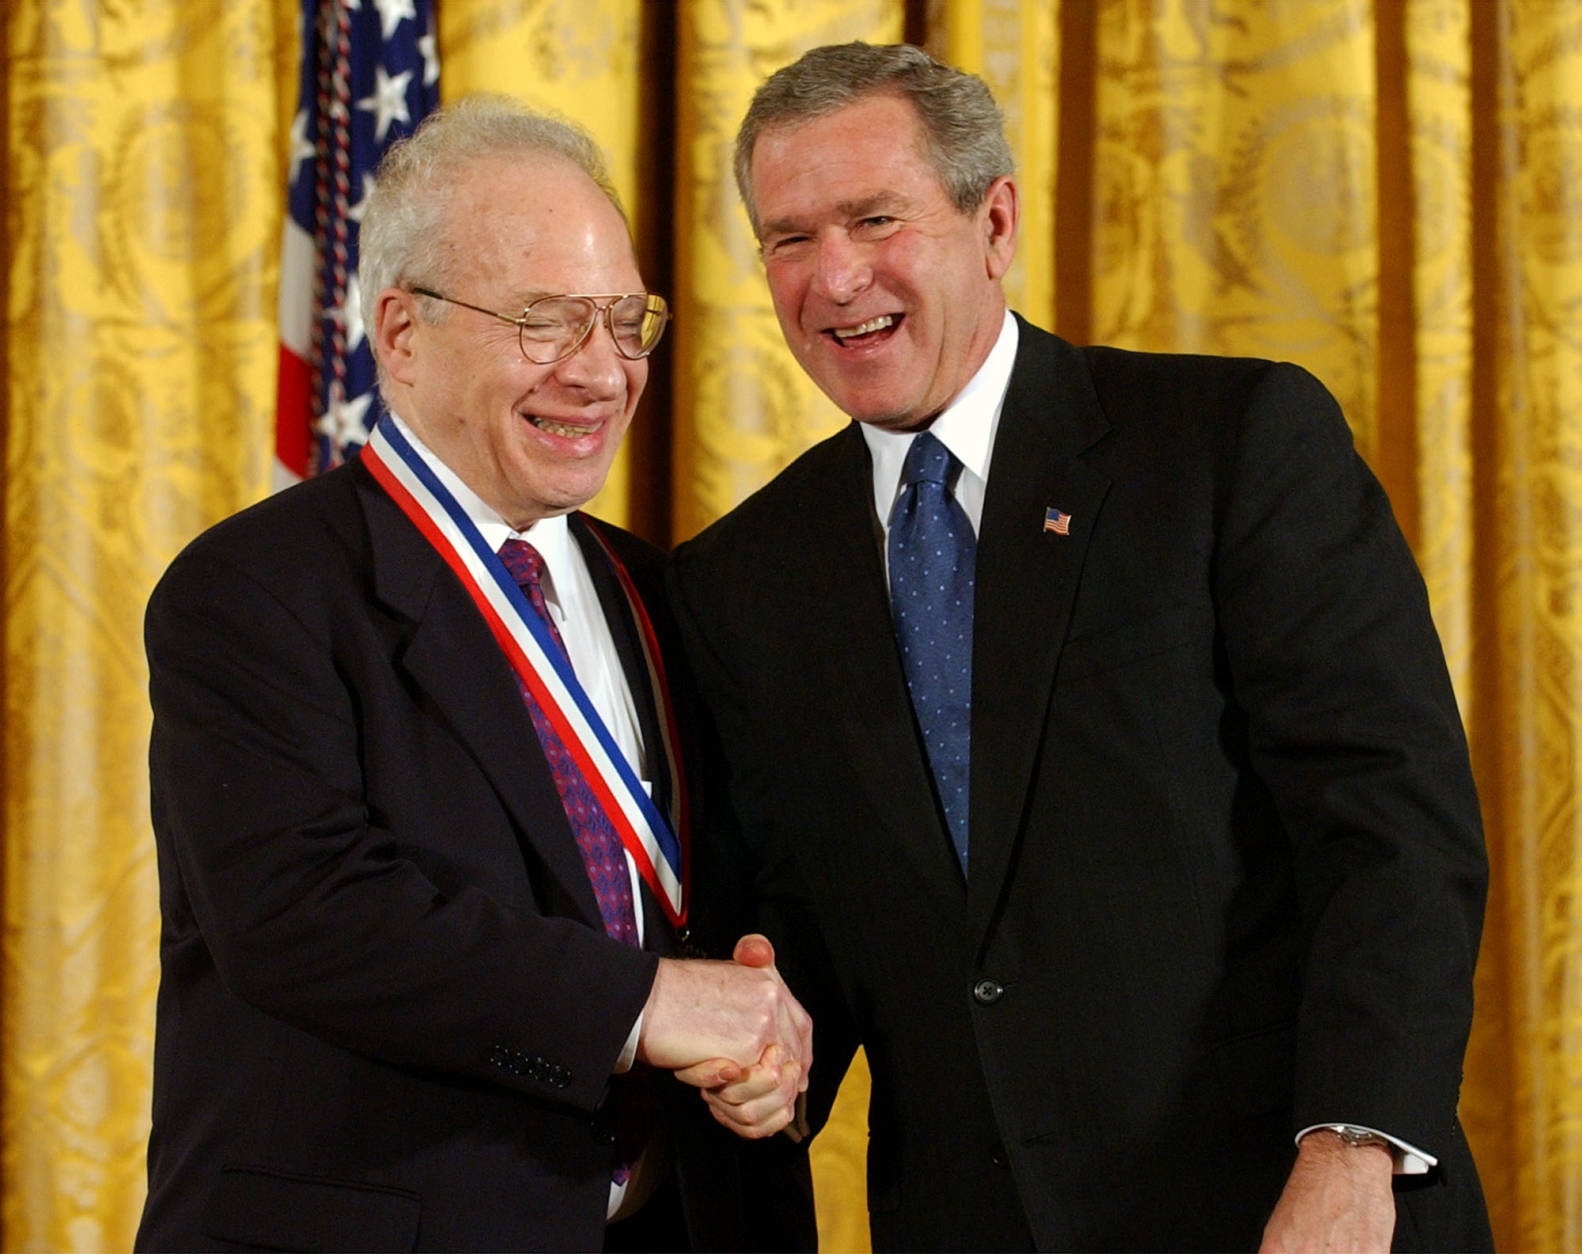 President Bush shakes hands with Richard L. Garwin of the Council on Foreign Relations after presenting him with a National Medal of Science for Physical Sciences in the East Room of the White House in Washington Thursday, Nov. 6, 2003. (AP Photo/Gerald Herbert)